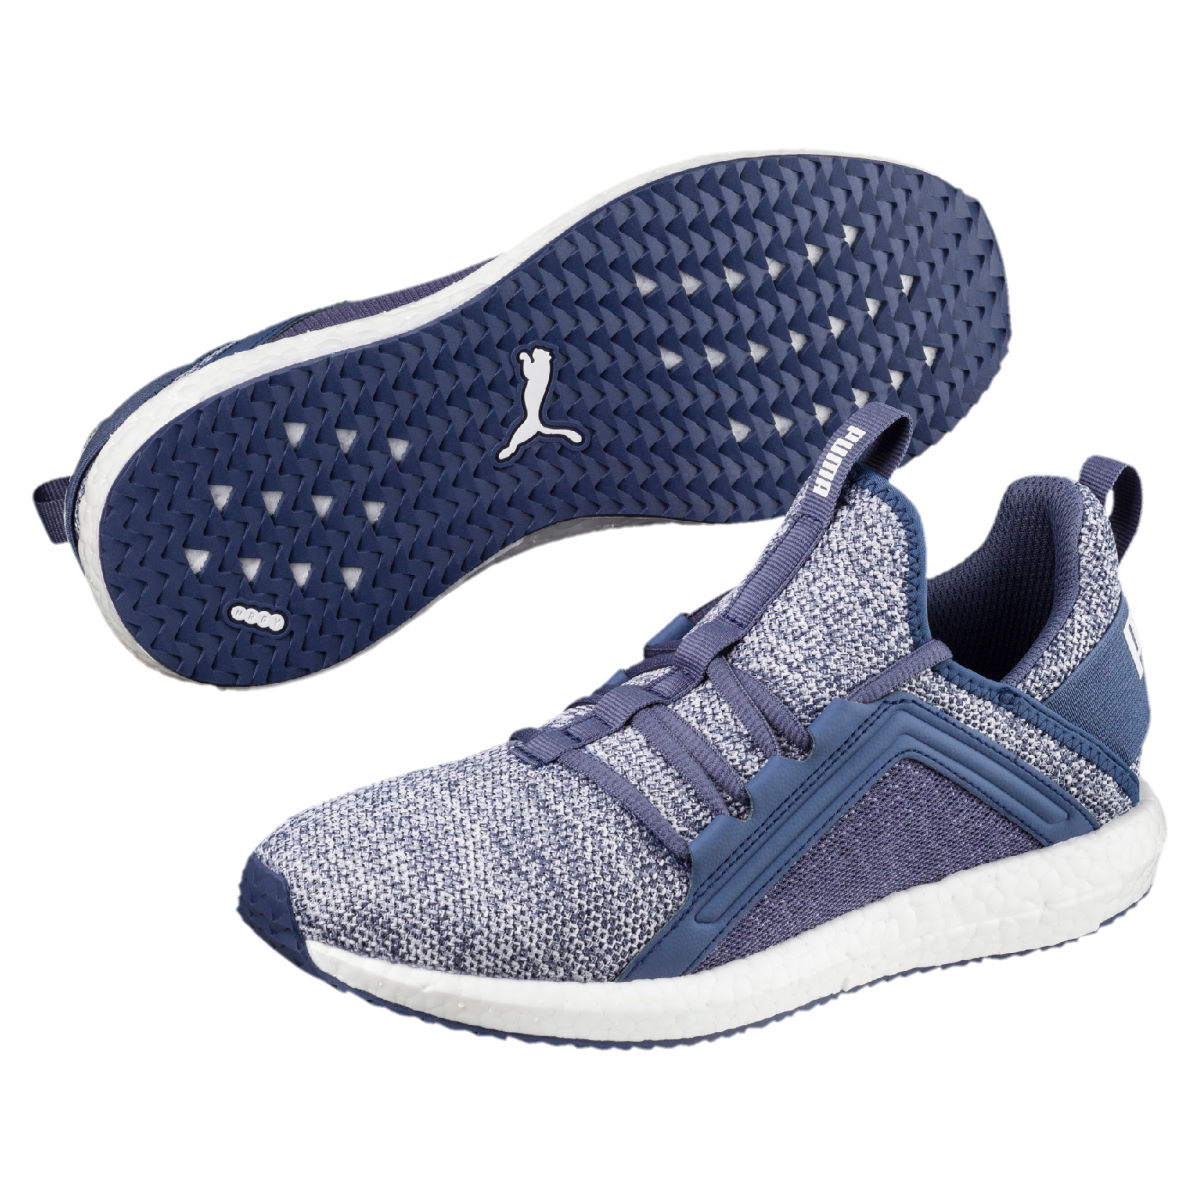 Chaussures Femme Puma Mega NRGY Knit - UK 5.5 blue indigo/white